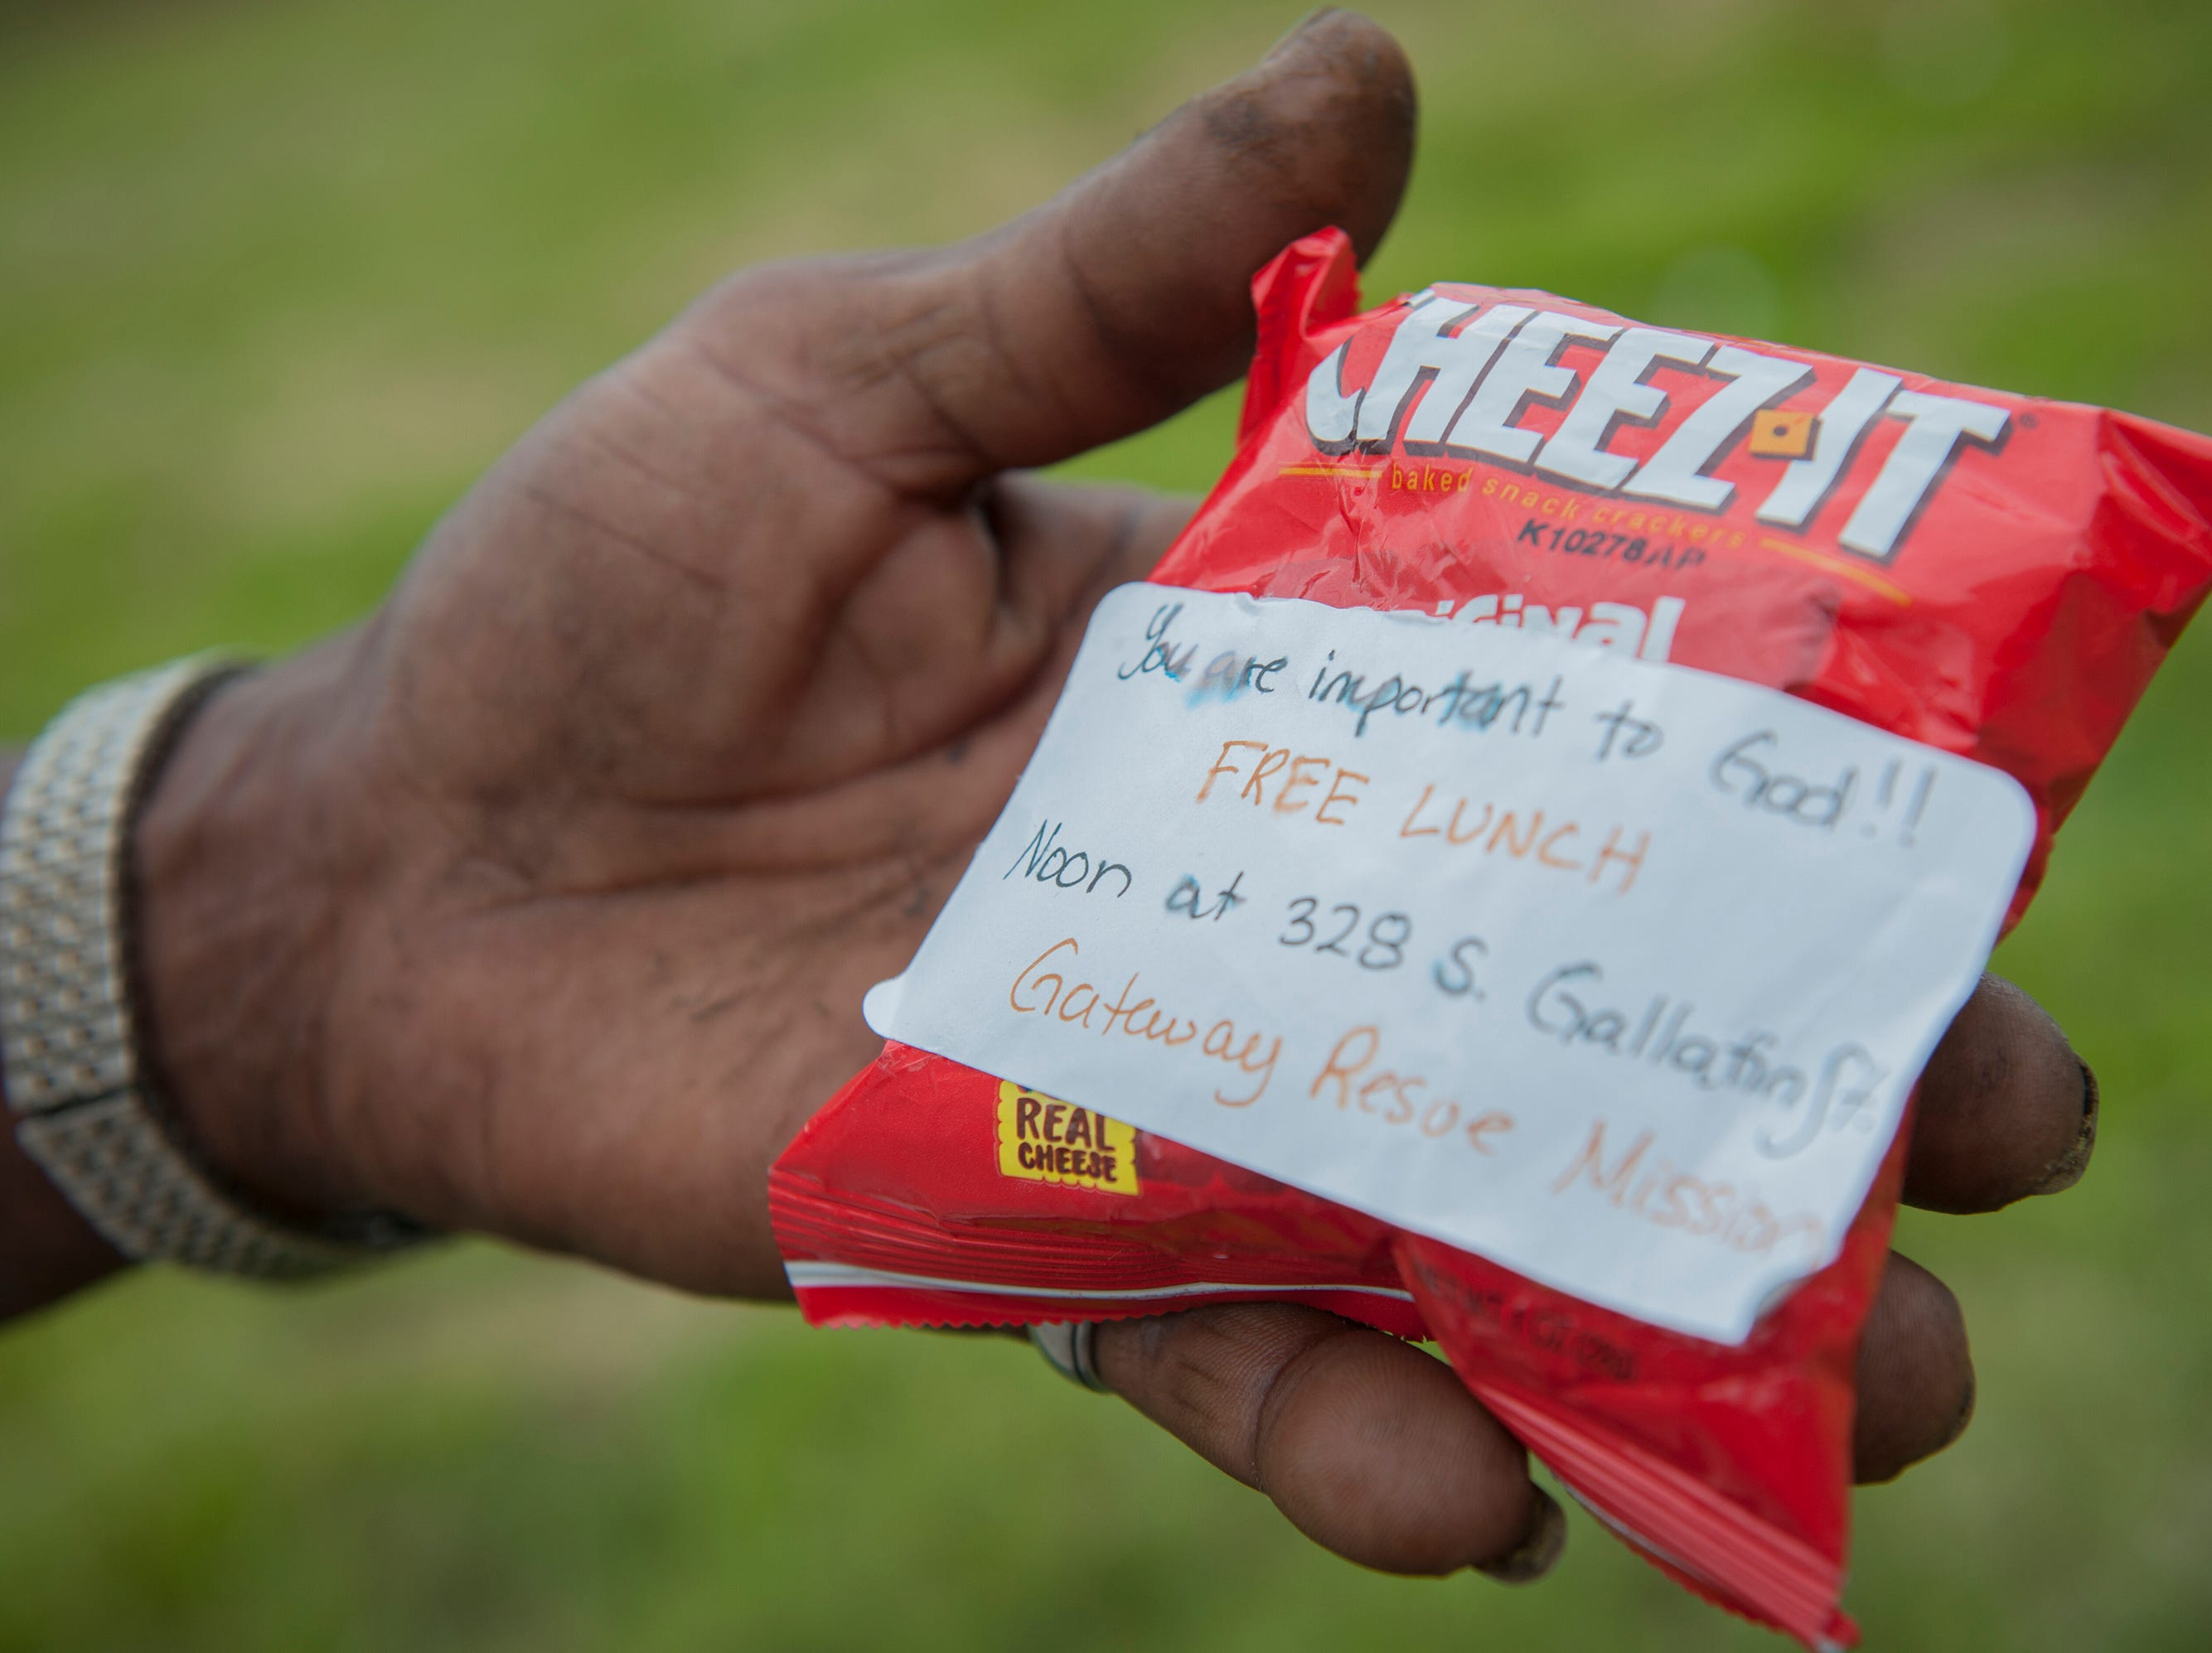 Gateway Rescue Mission left this bag of crackers with a message at the corner of I-55 West Frontage Road in Jackson. Dan was the first to find it. That means it's his. Although Dan later left it there and Cornelius came to the corner, Cornelius explained that it's Dan's and no one will take it. There's a code.